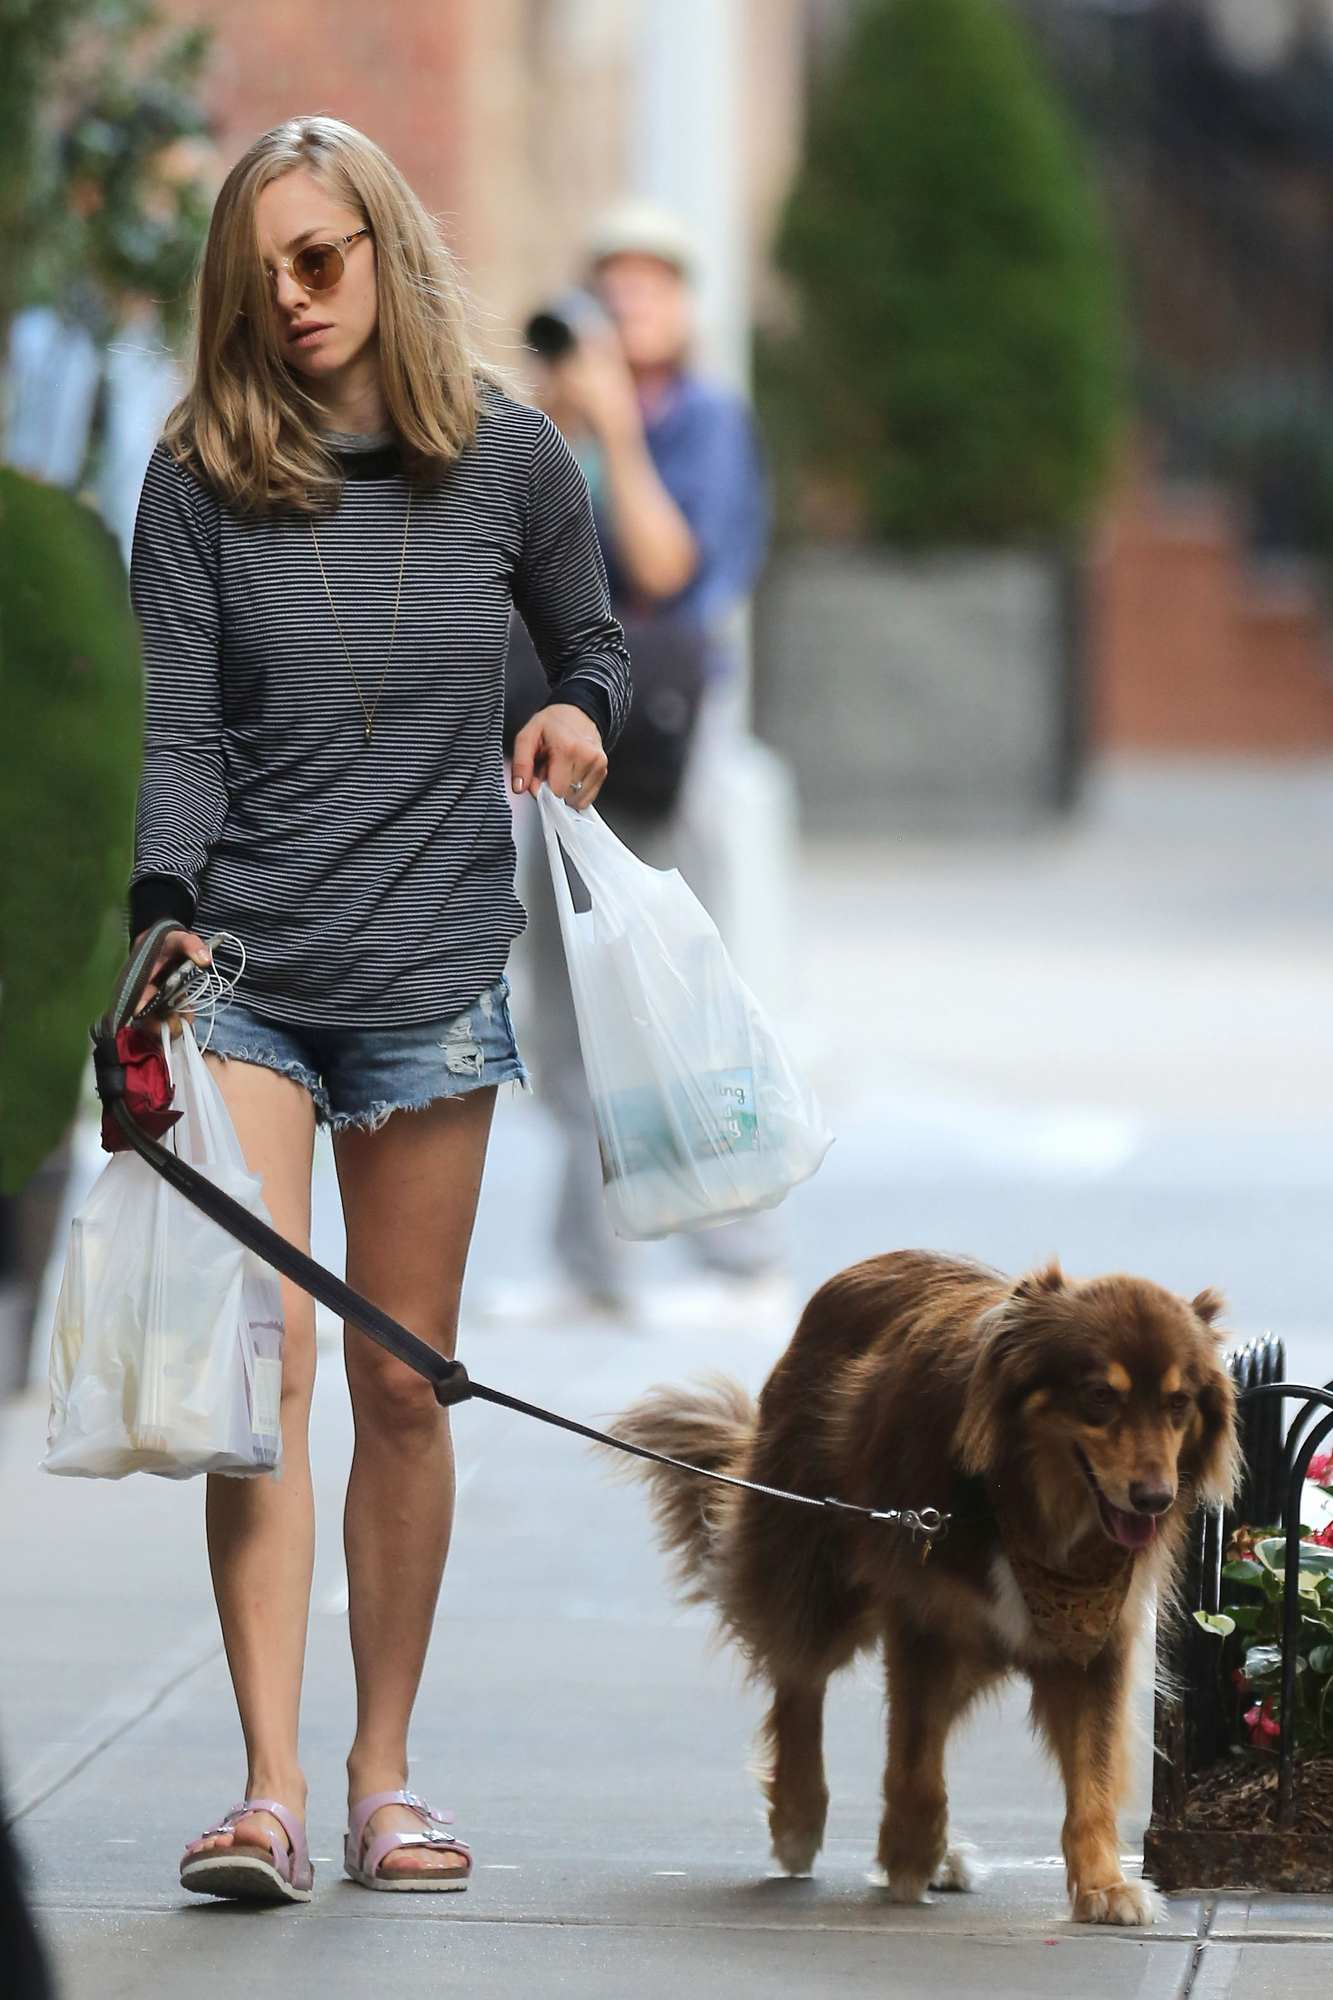 Amanda Seyfried With Short Jeans Strolling Her Dog In Nyc 4